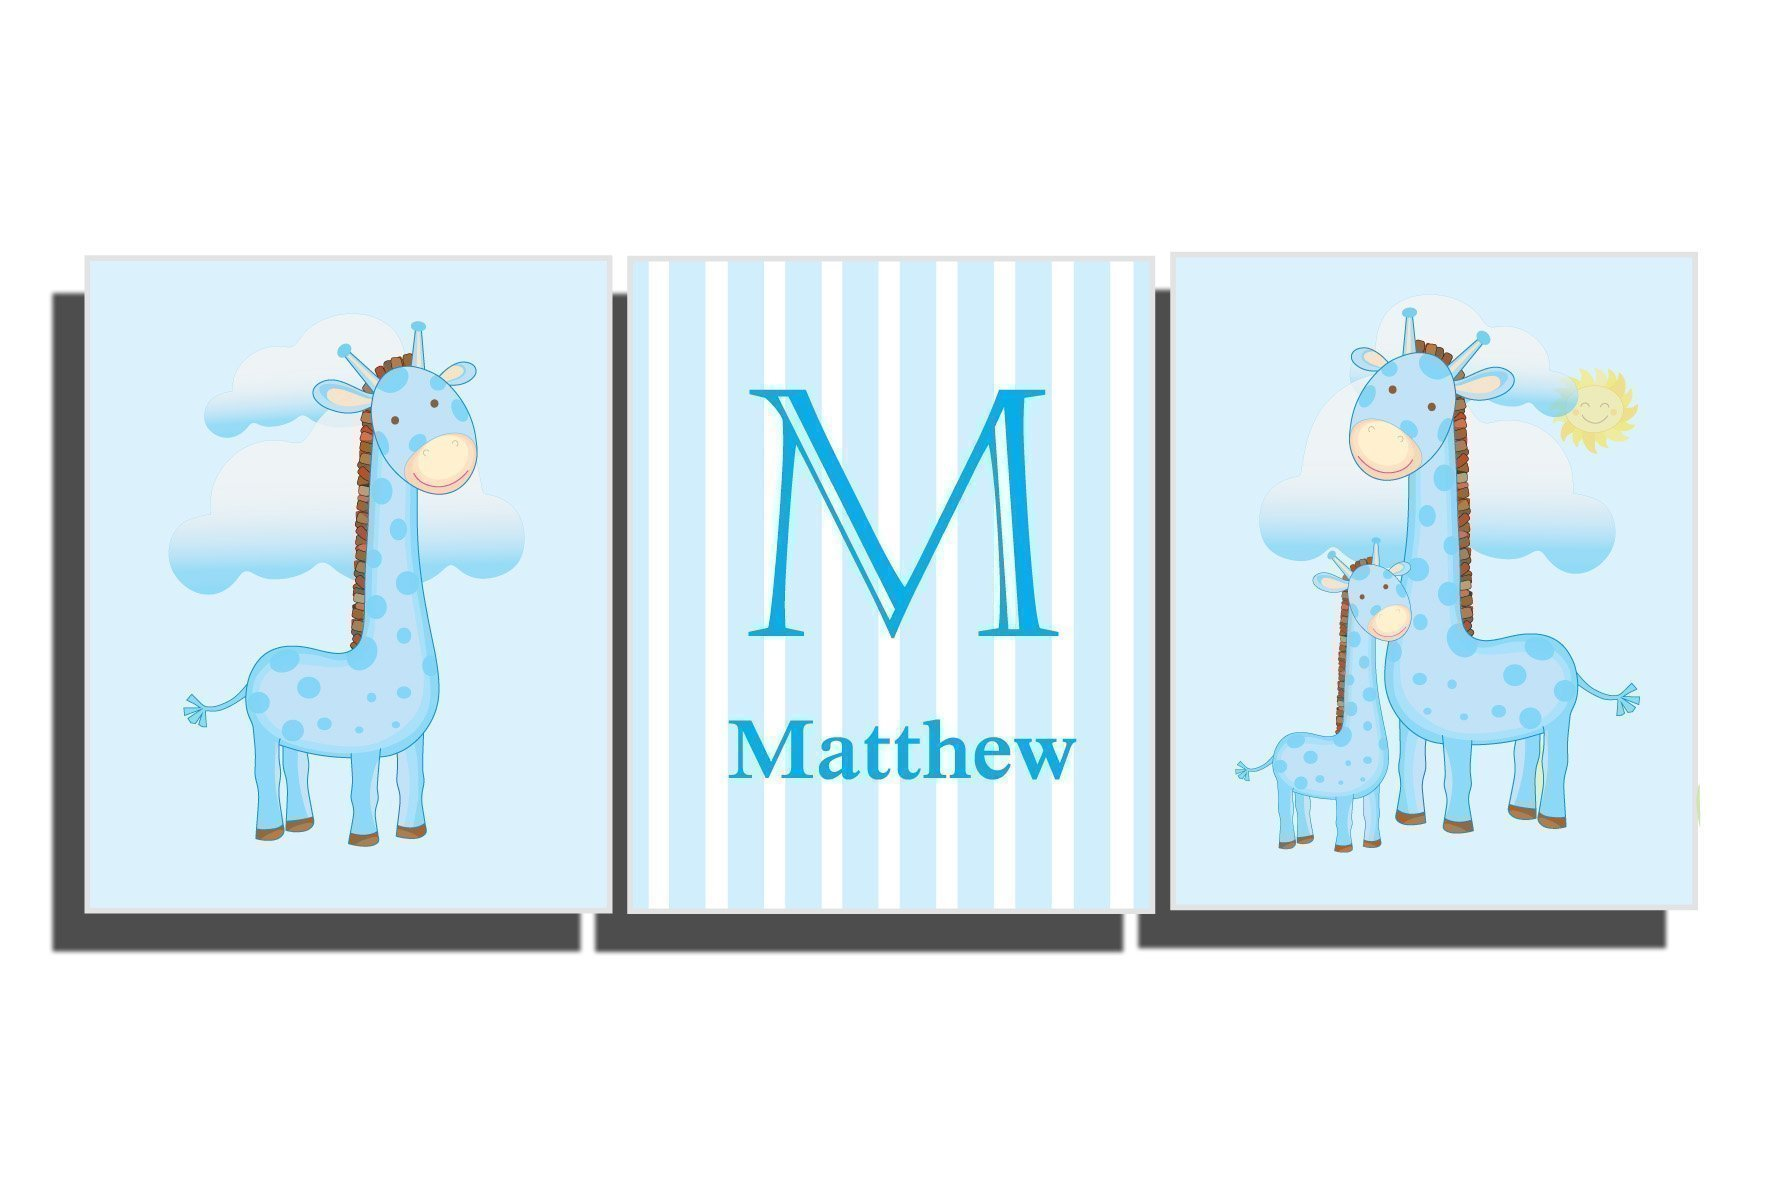 Baby Boy's Room Decor Custom Name Nursery Wall Art Décor Giraffe Decals Safari Animal Pictures Teal Blue Gray Personalized Set 3 Unframed Prints